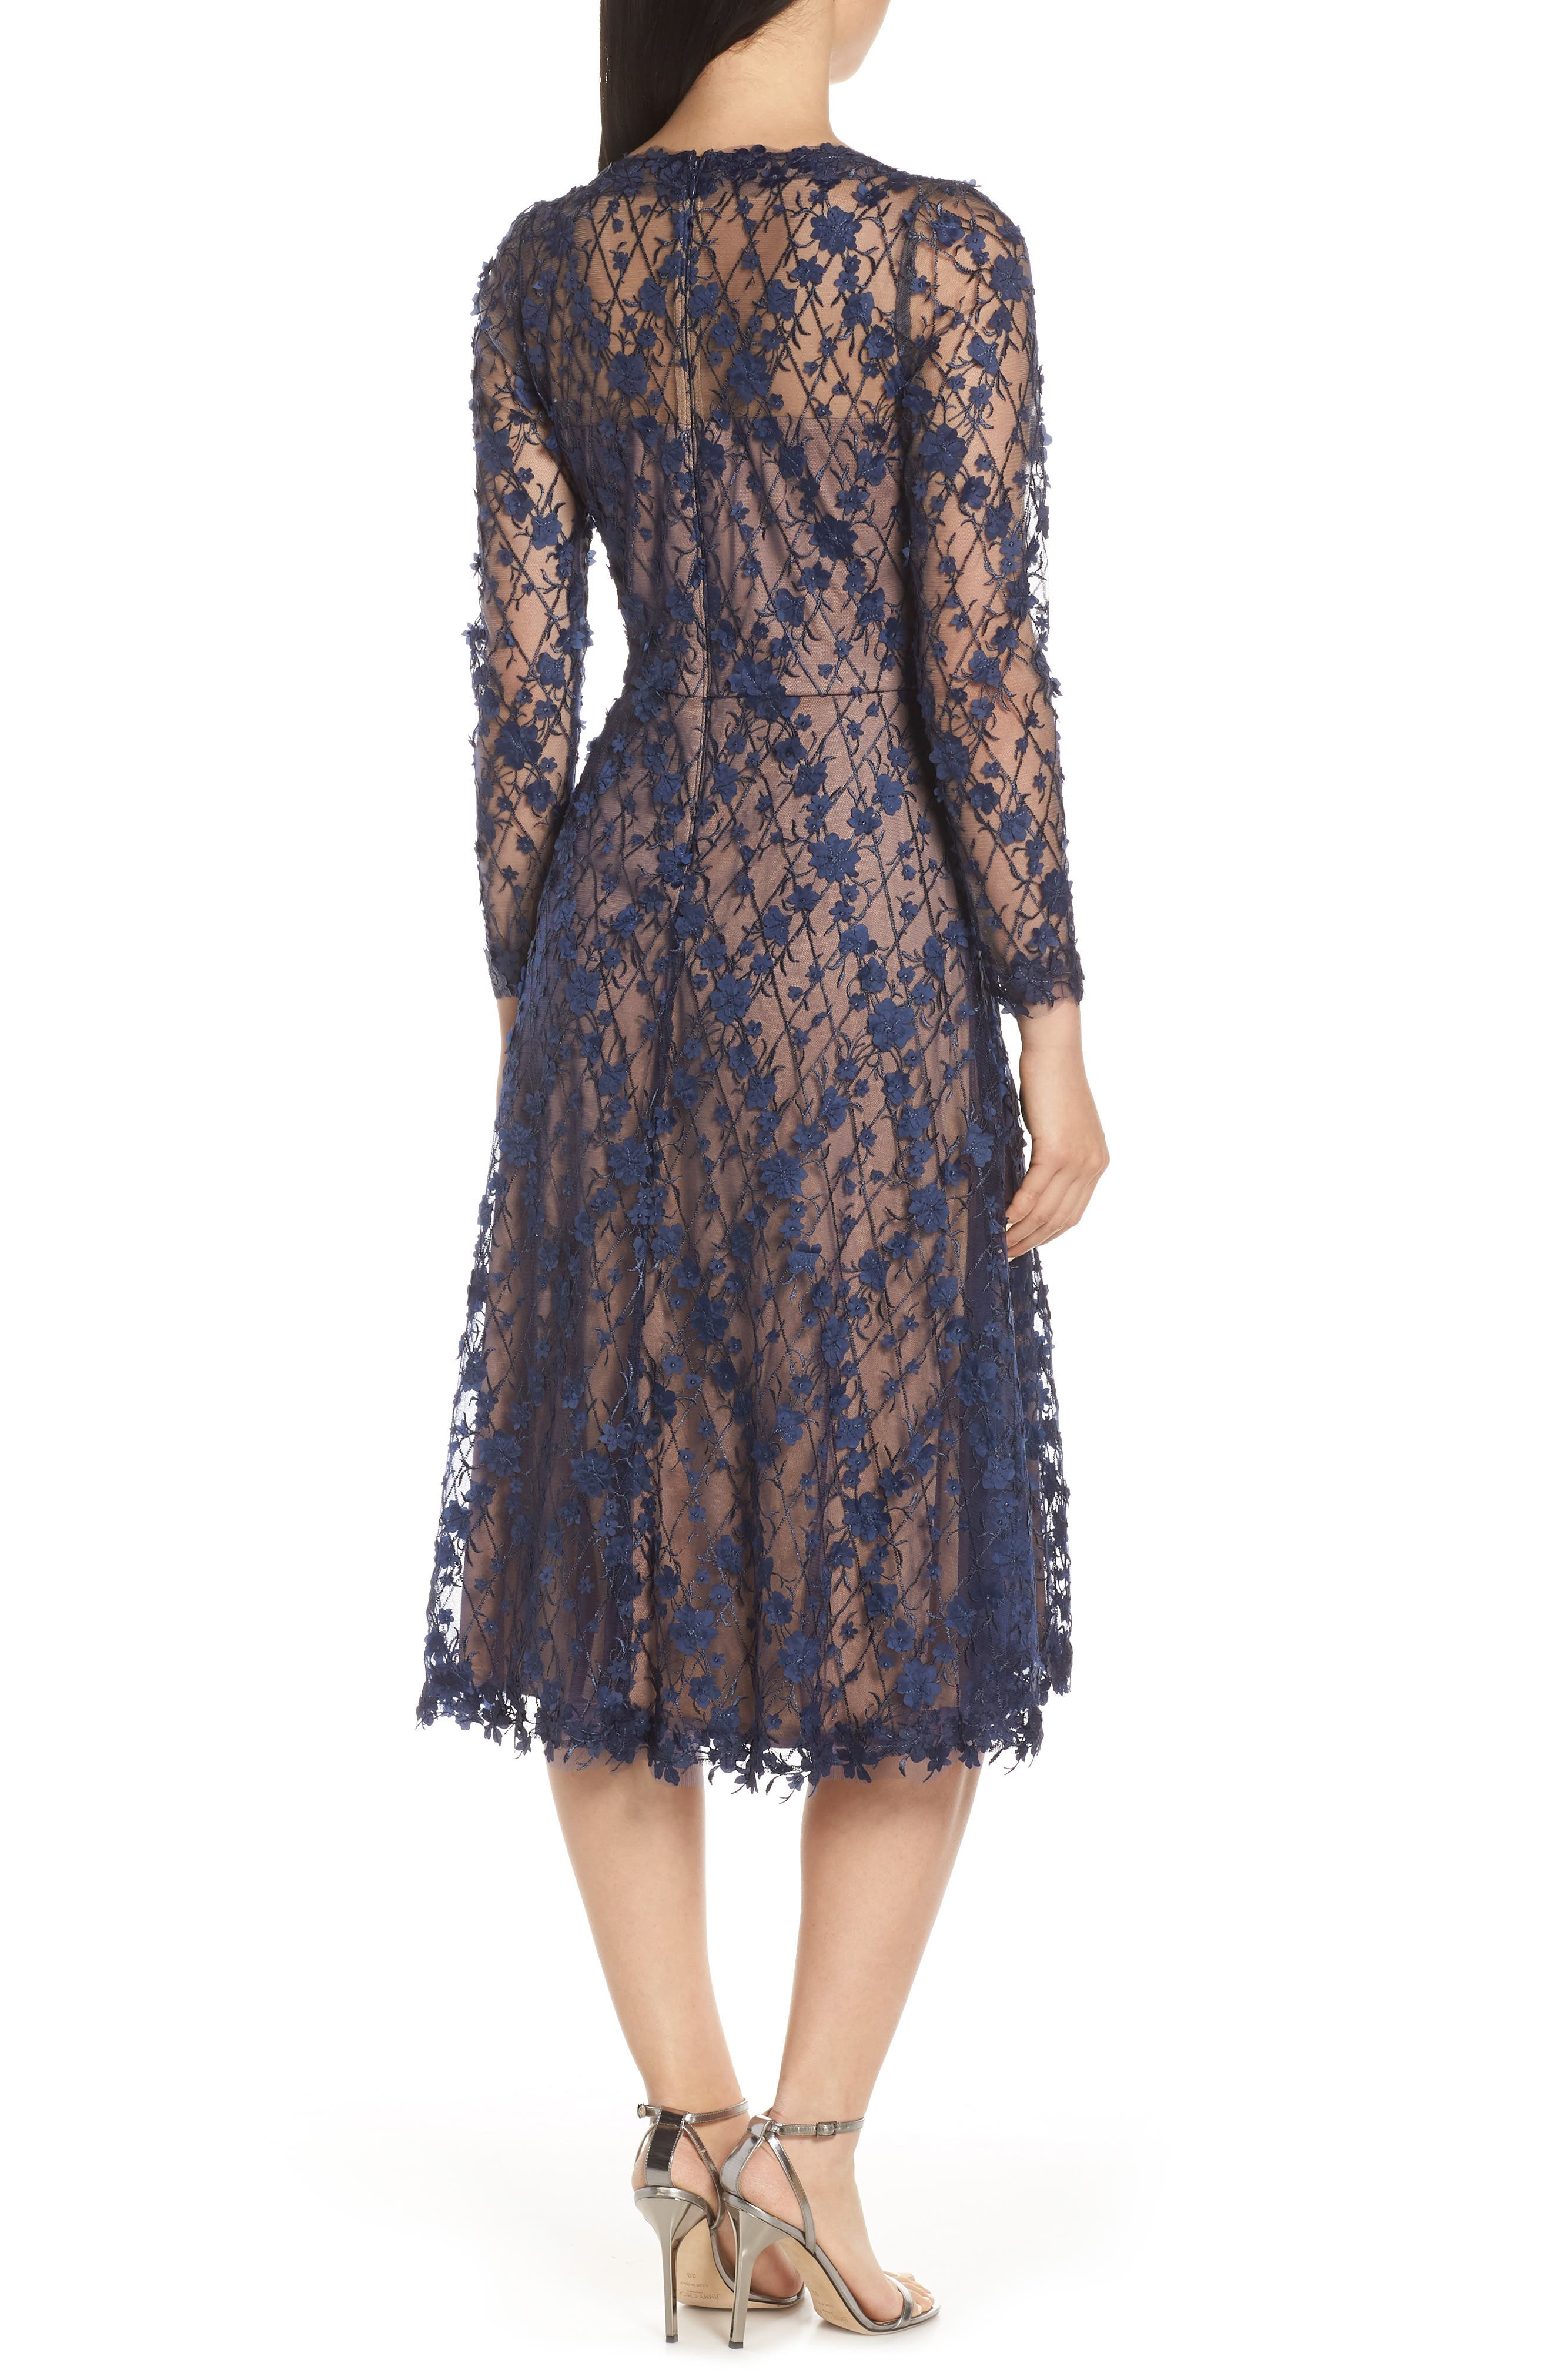 3D Flowers Lace Dress,                             Alternate thumbnail 2, color,                             MIDNIGHT/ NUDE